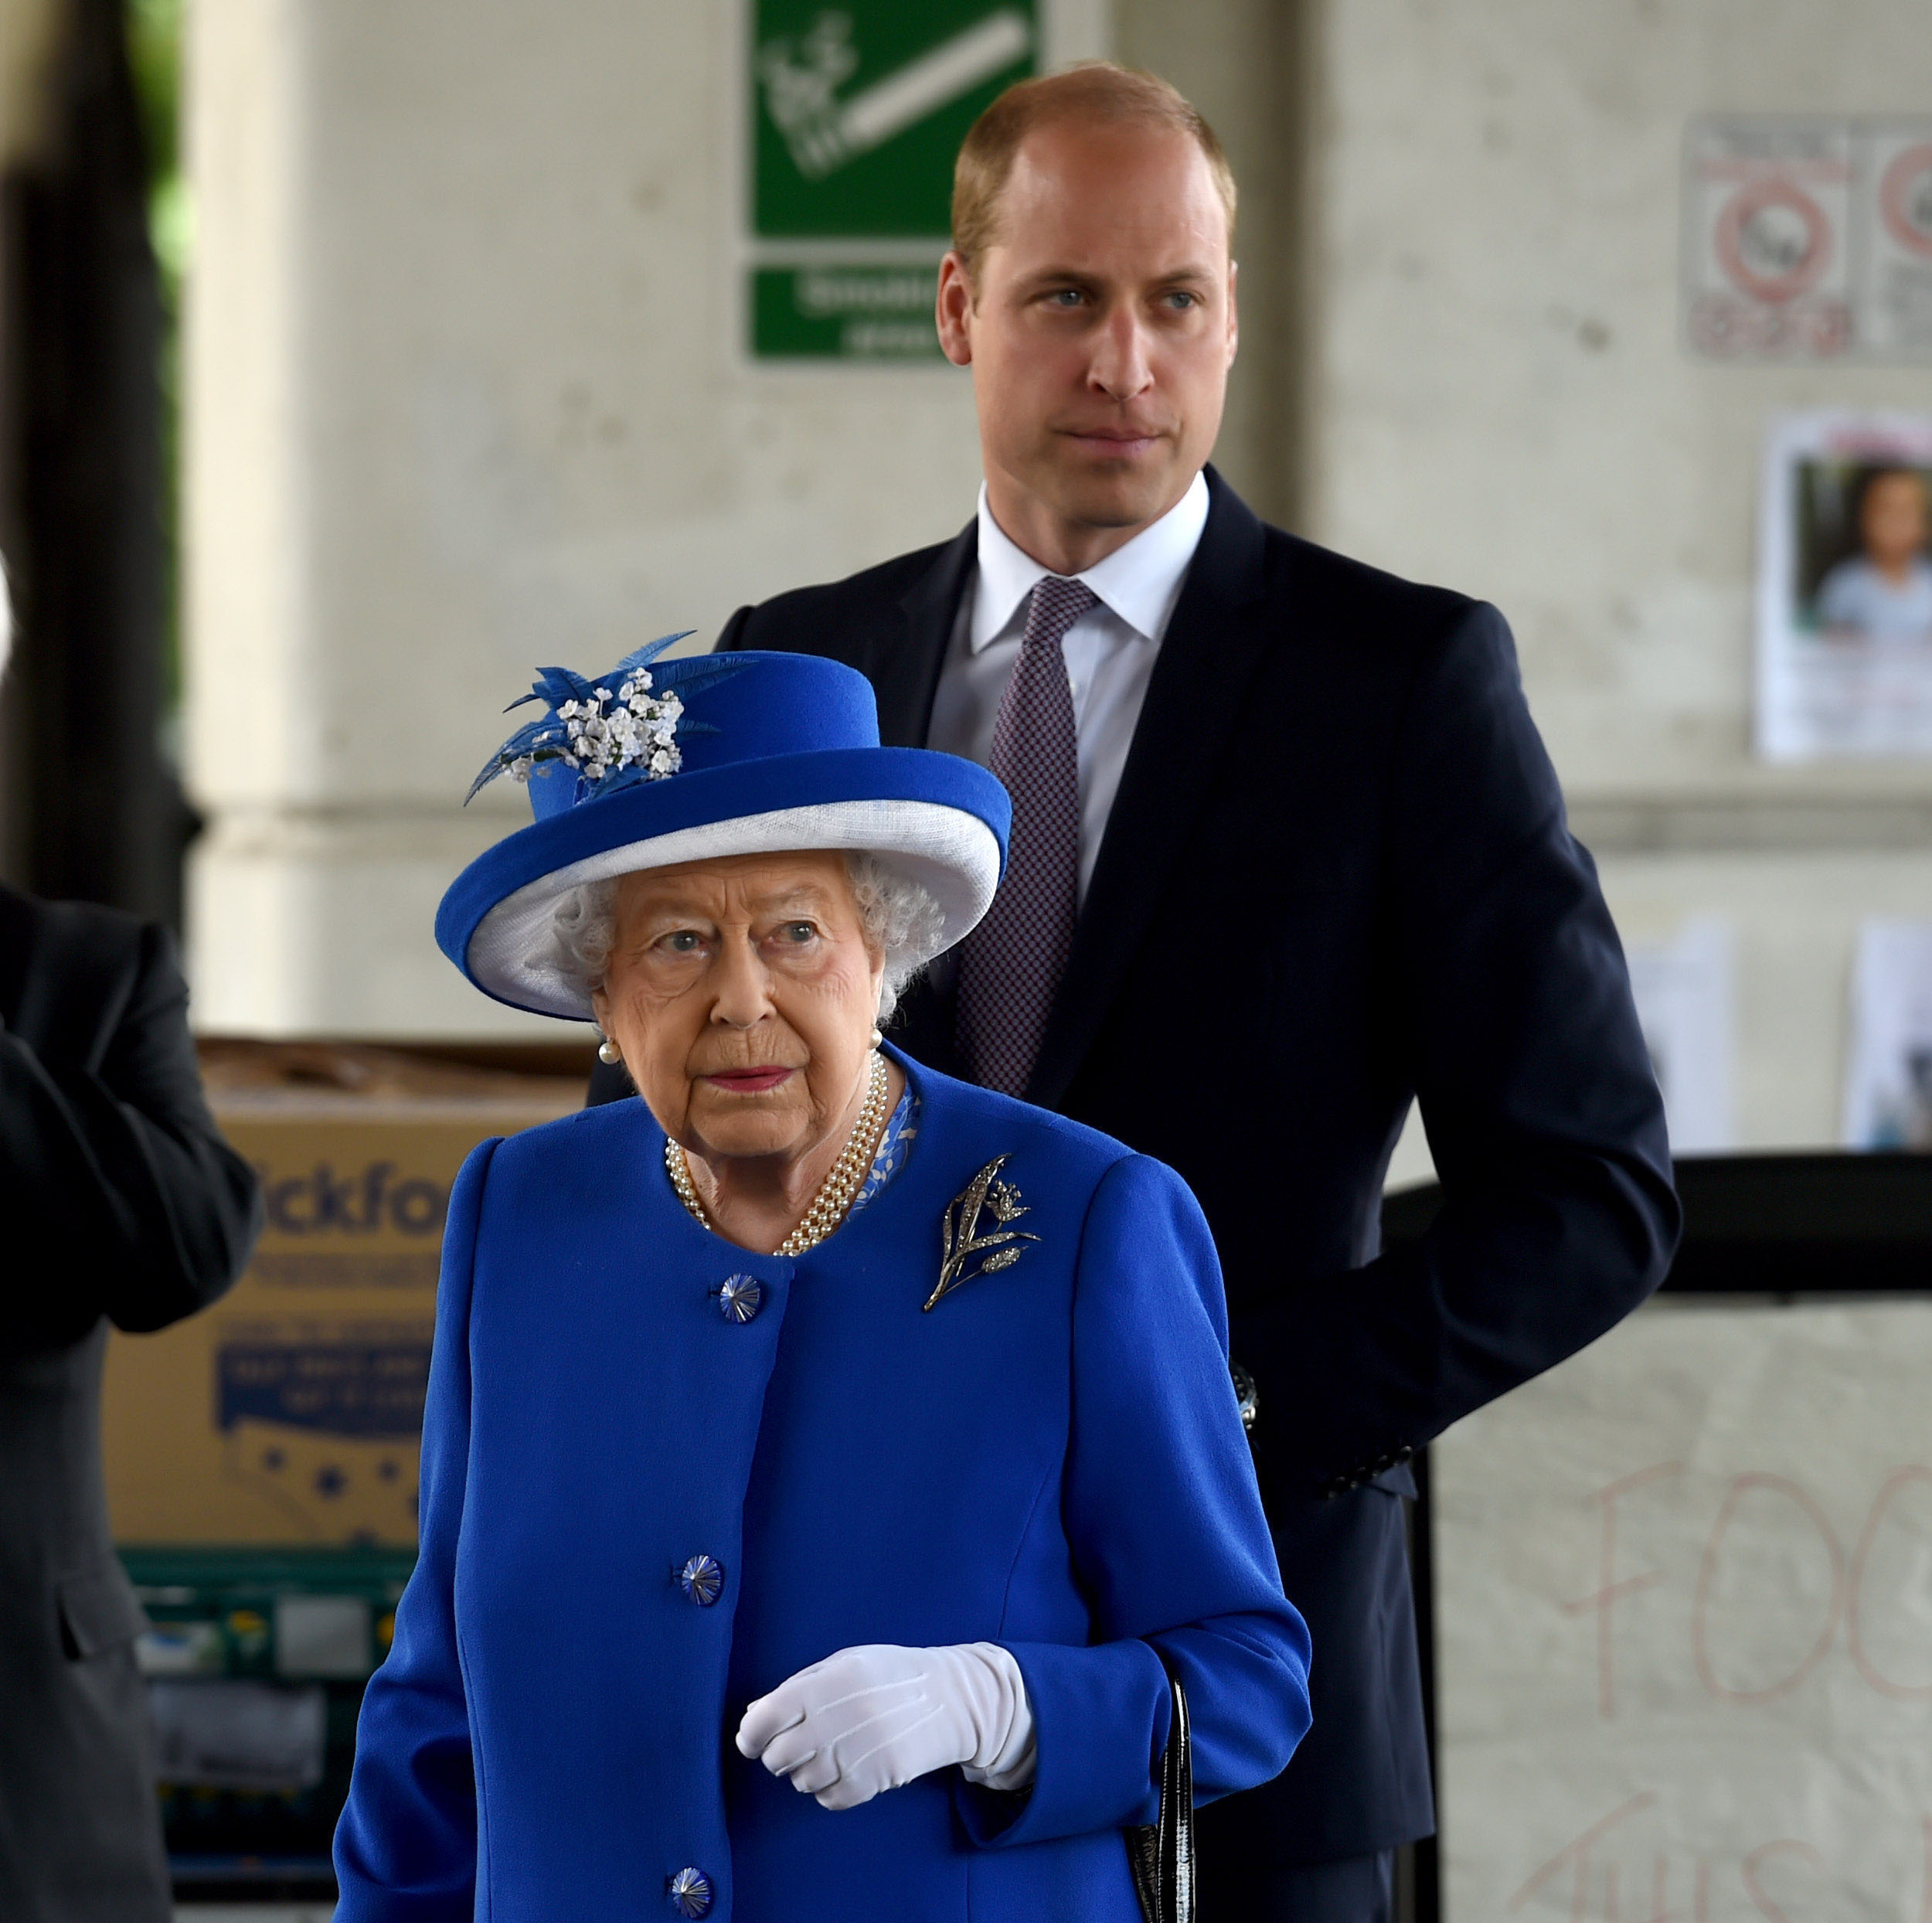 The Queen and The Duke of Cambridge visit those affected by Grenfell Tower